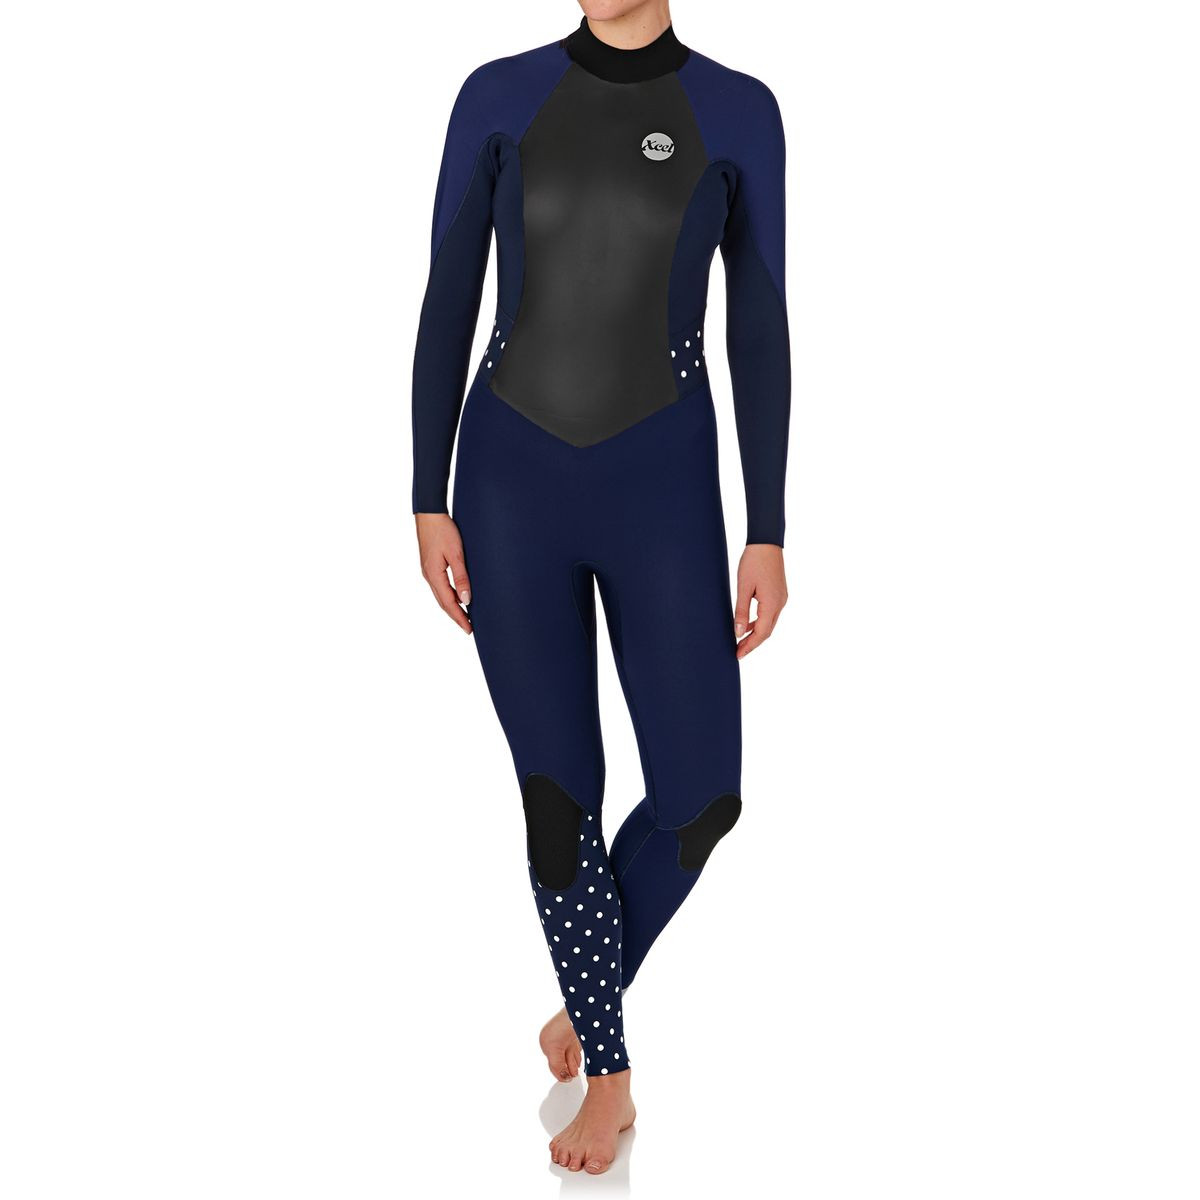 Xcel Womens 3/2mm Xplorer 2017 OS Back Zip Wetsuit - Ink Blue